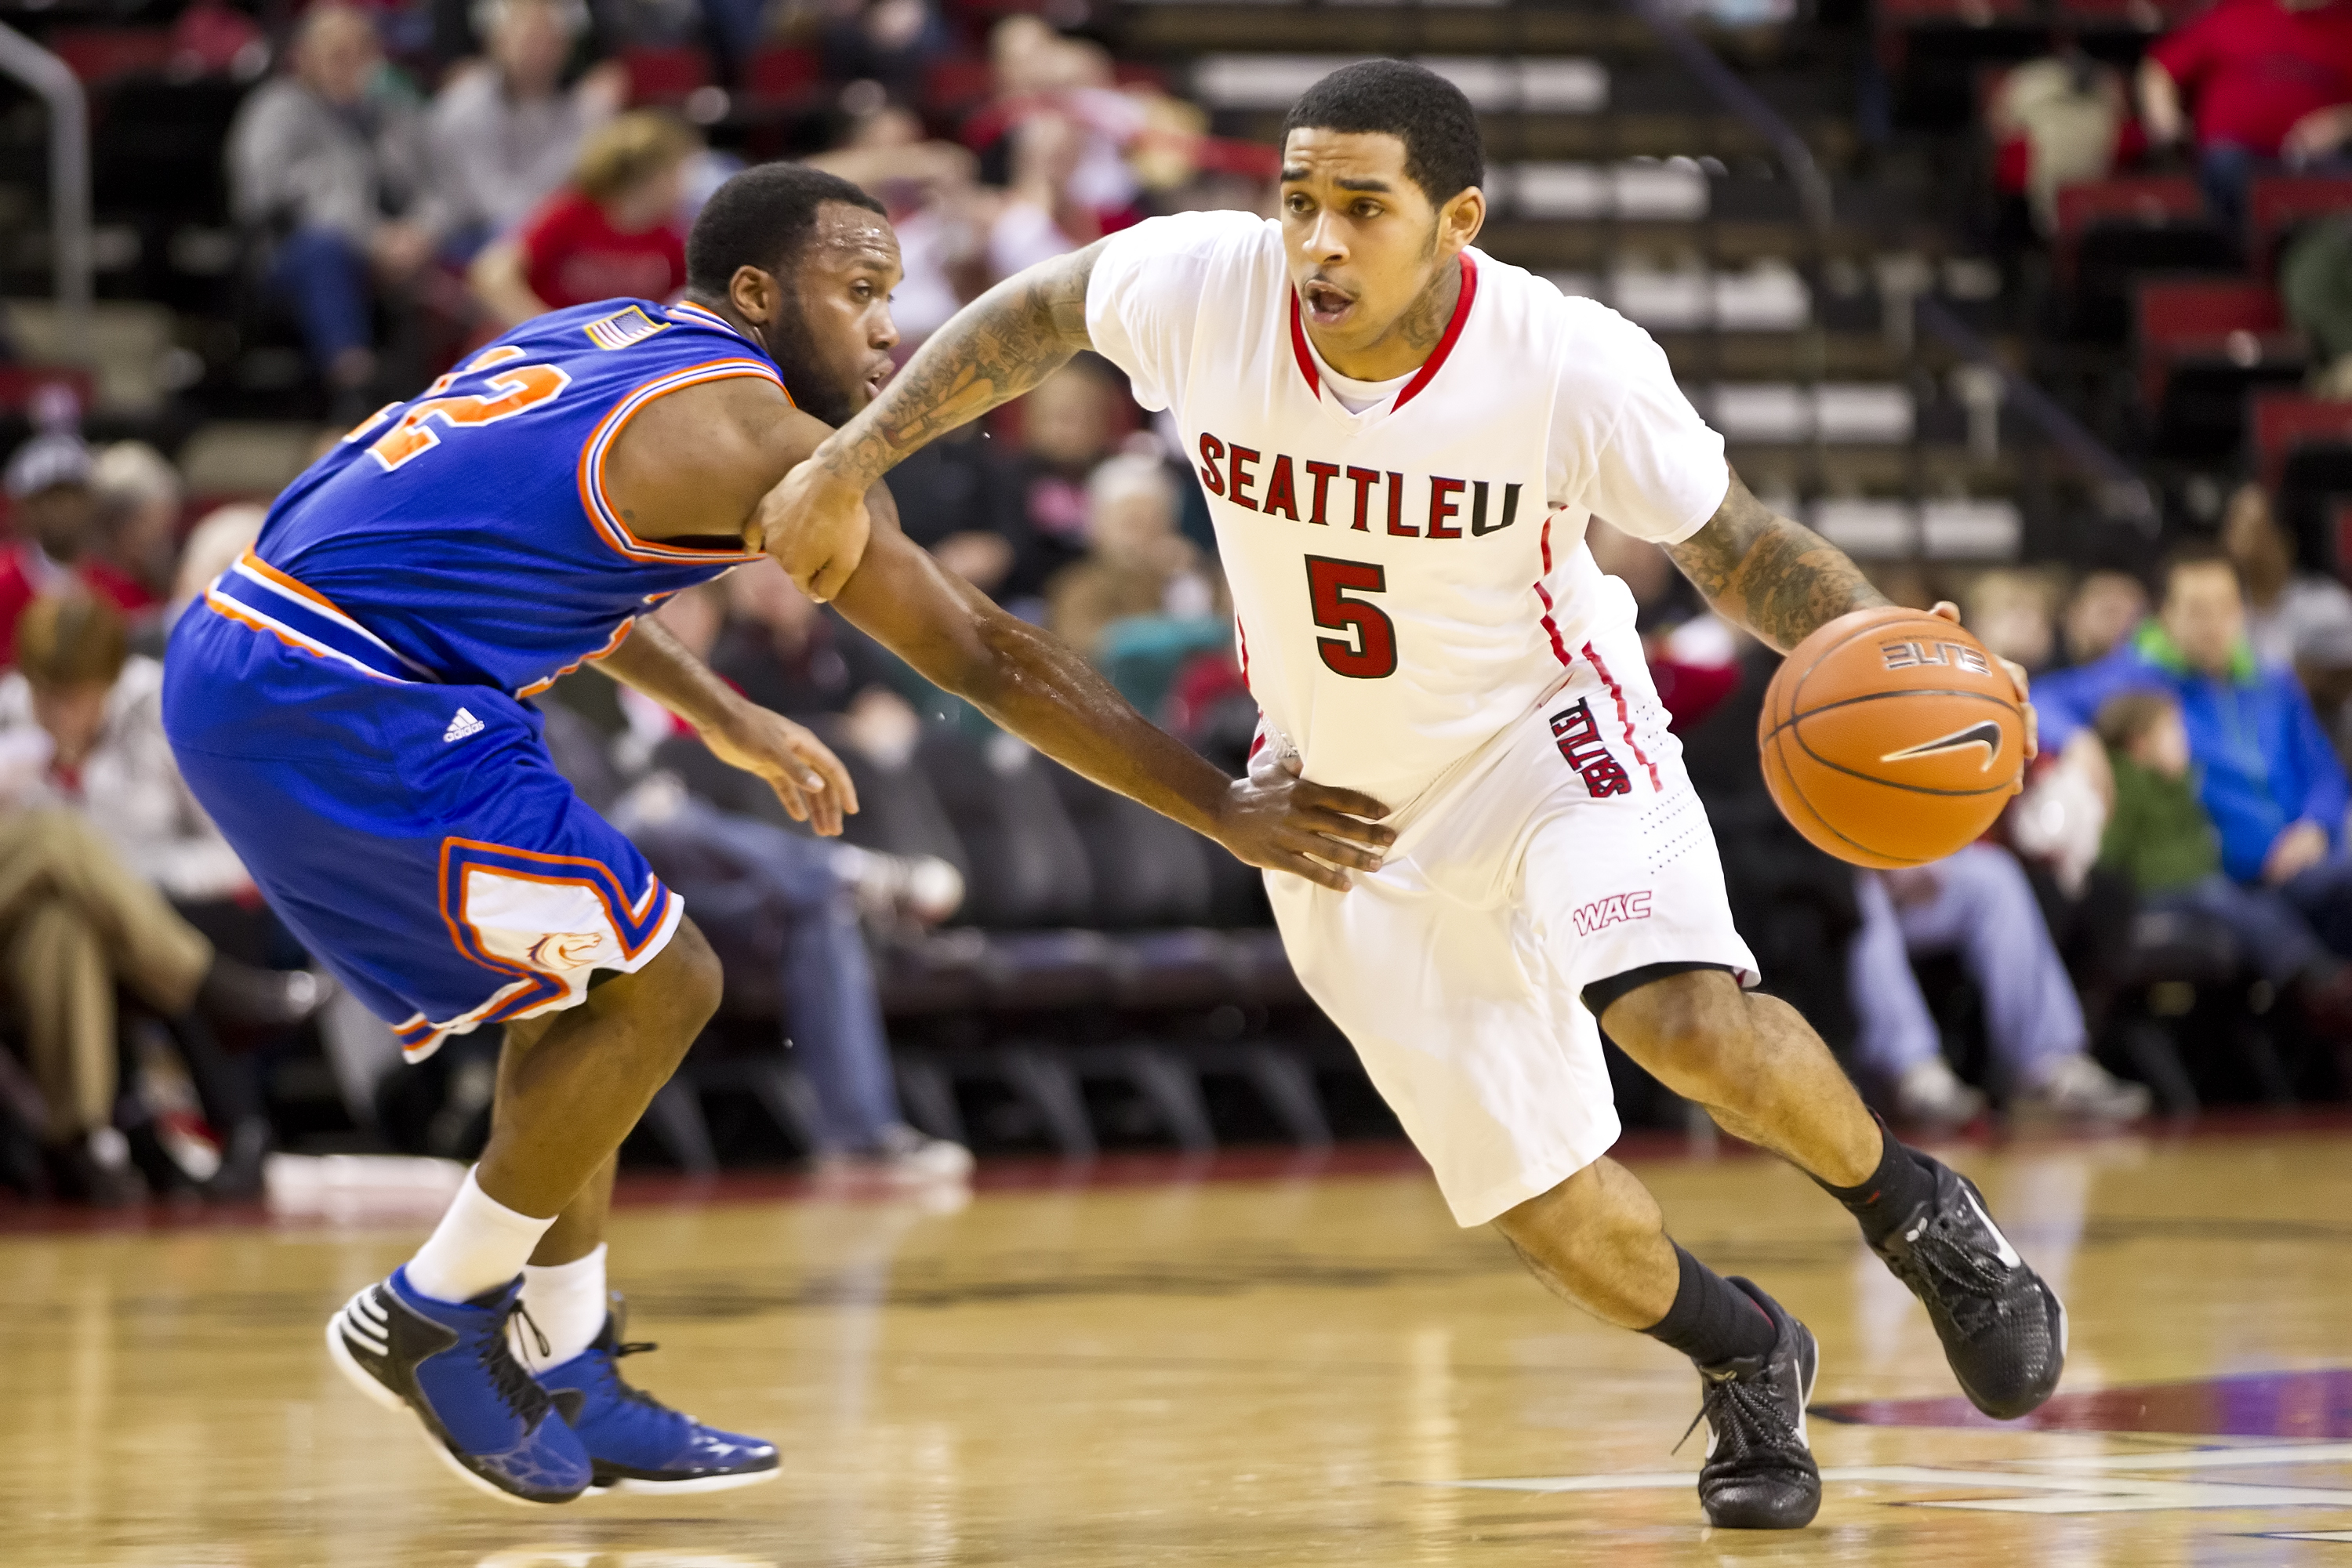 Seattle U Basketball